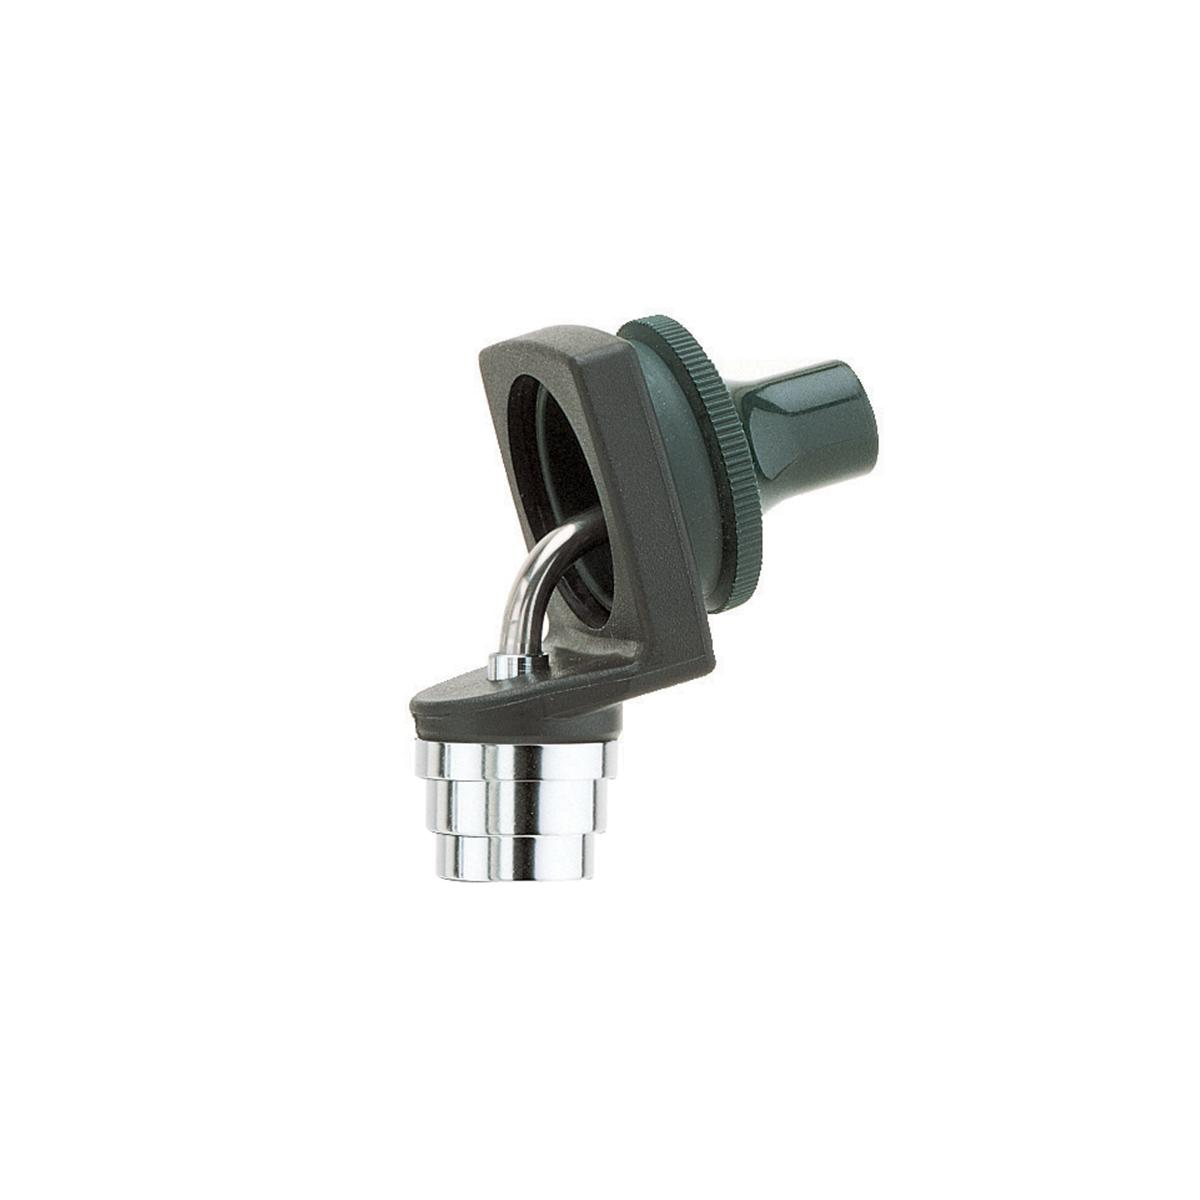 3.5 V Nasal Illuminator head, 3/4 view, illuminator facing right